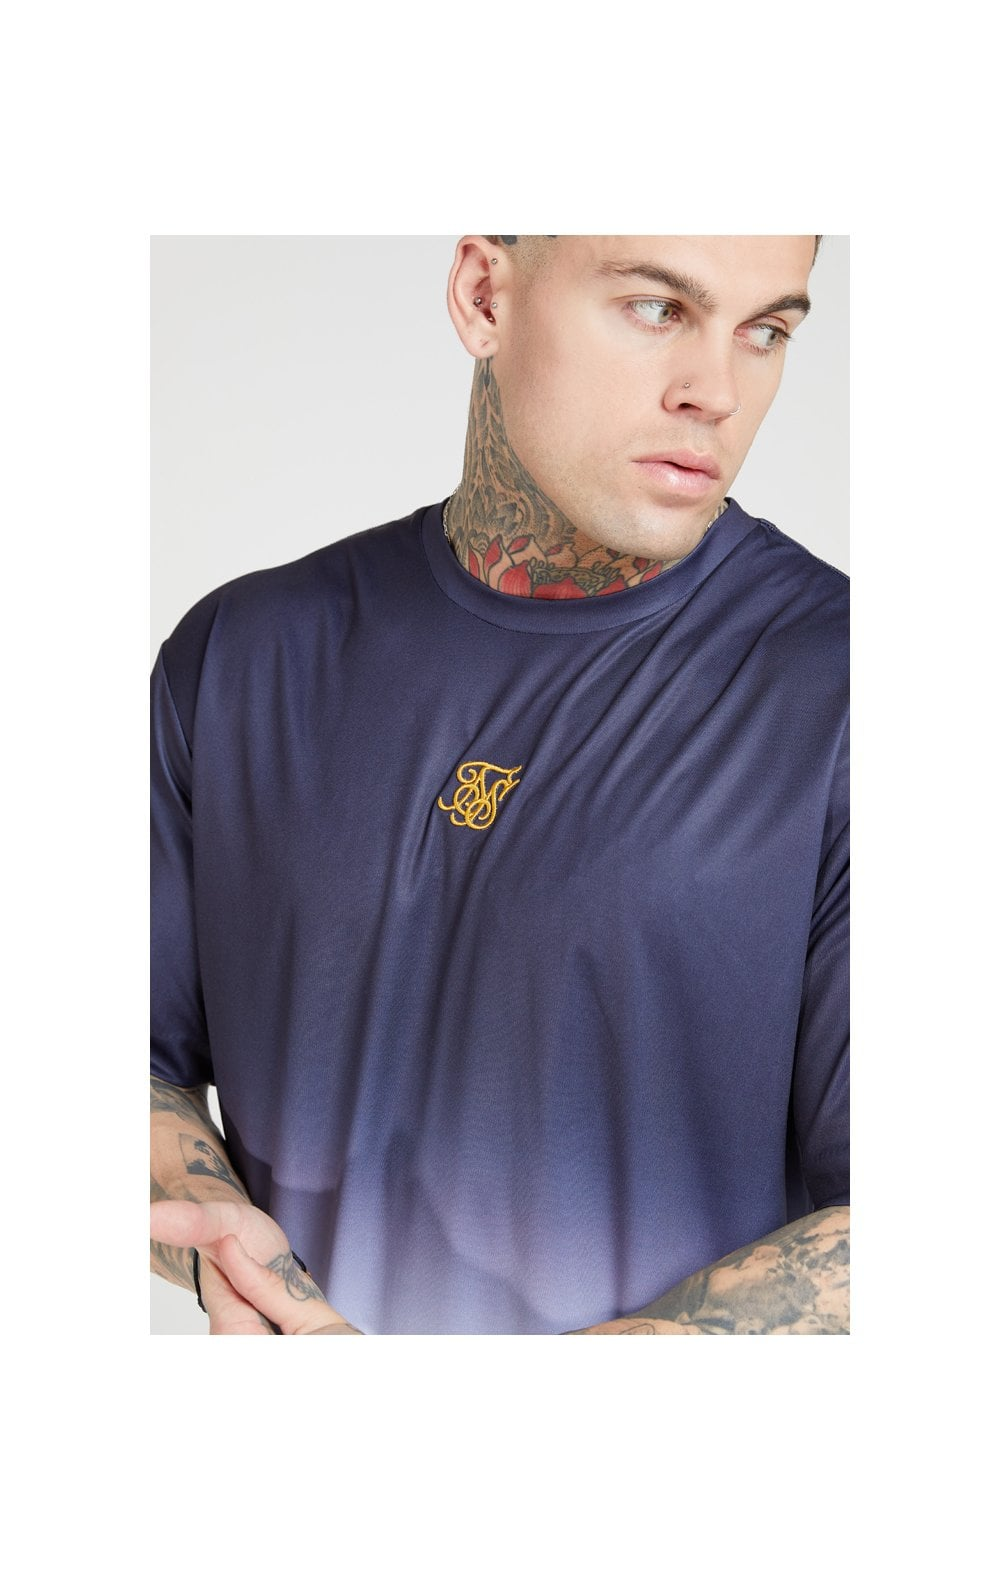 SikSilk S/S Essential Tee - Navy & White (1)